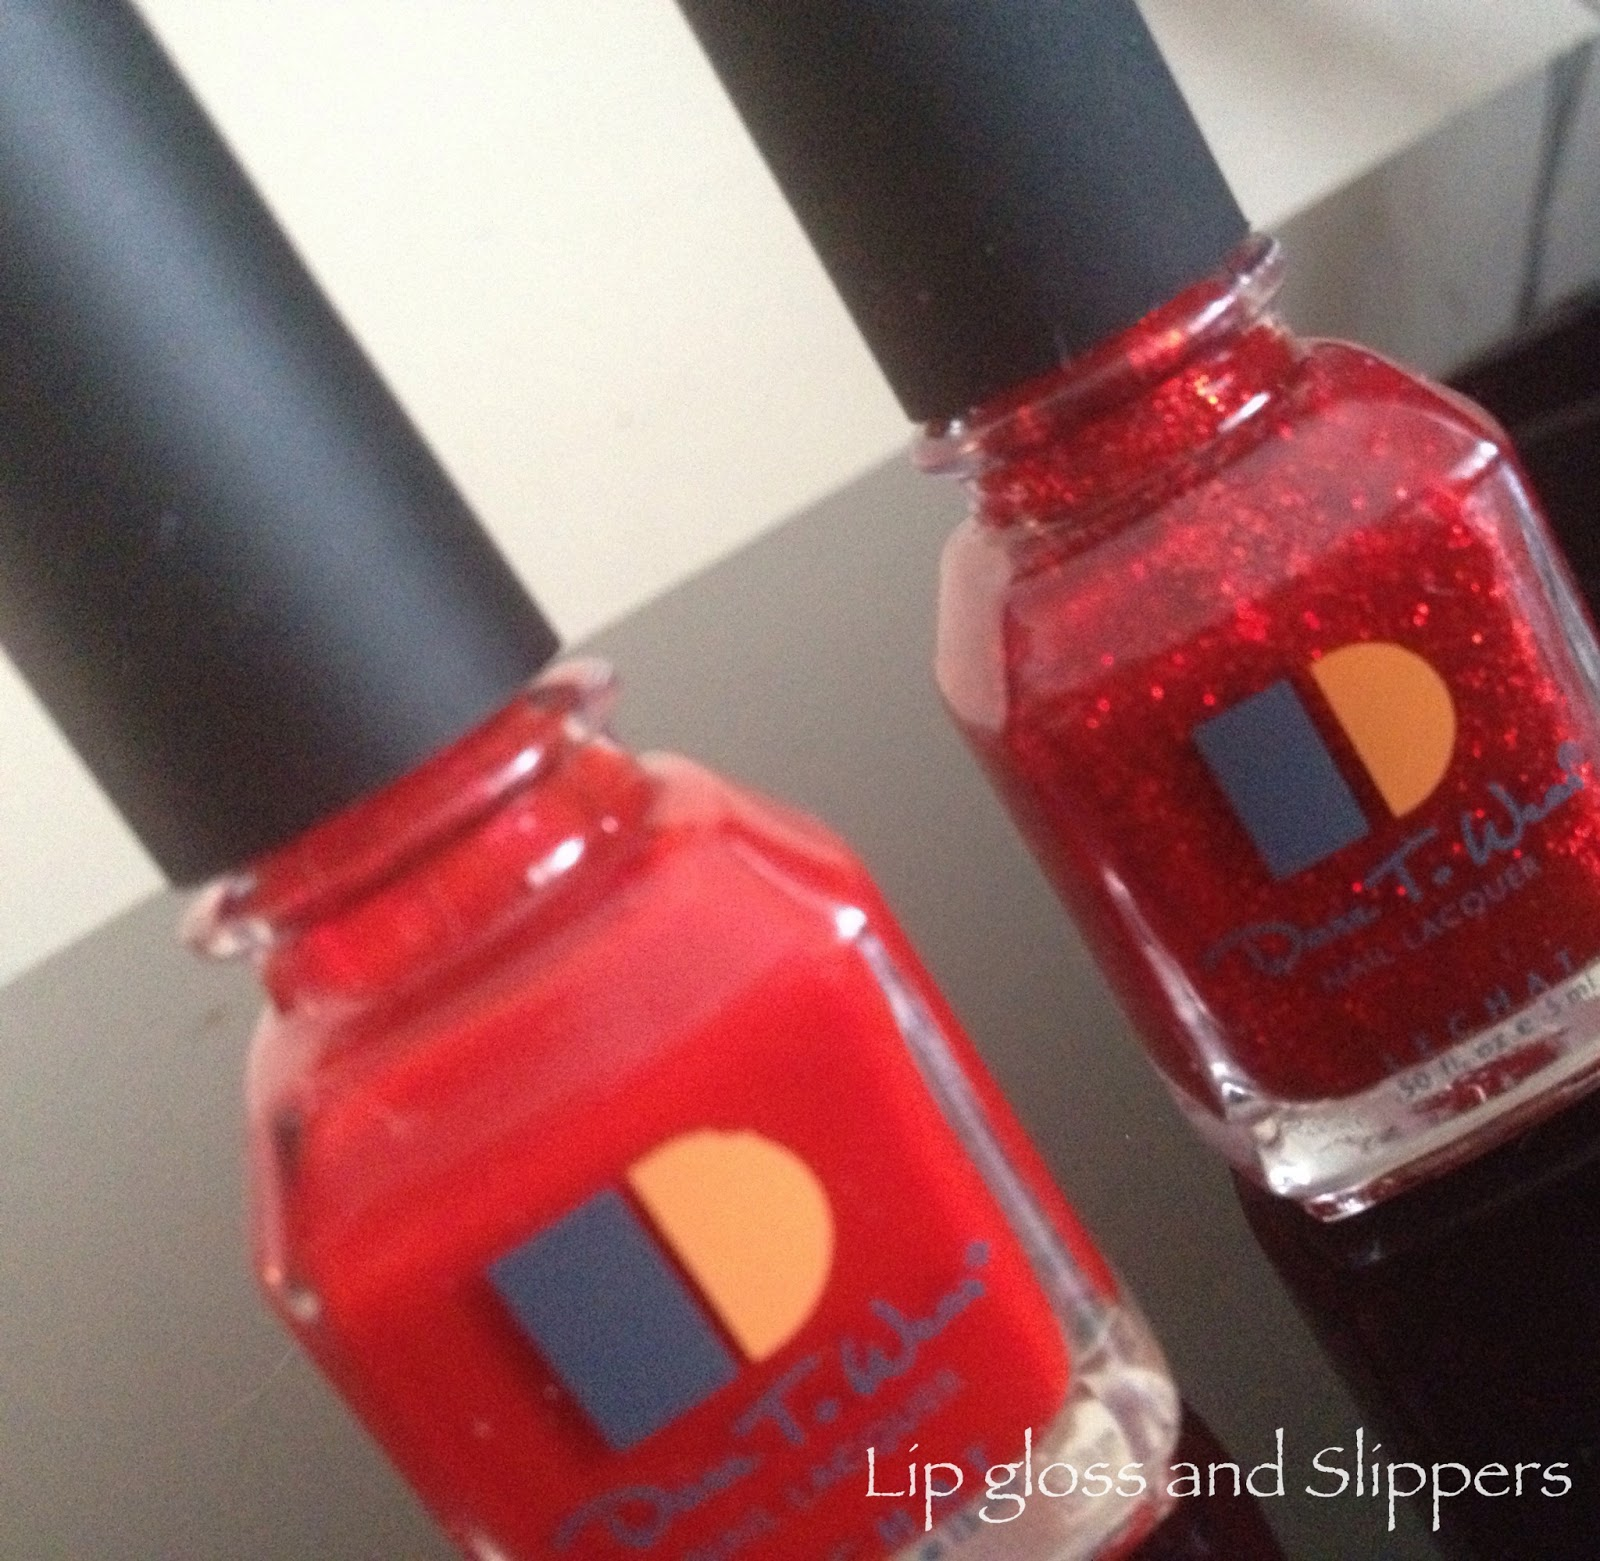 Lip Gloss and Slippers: Le Chat - Dare to Wear Nail Polish and ...